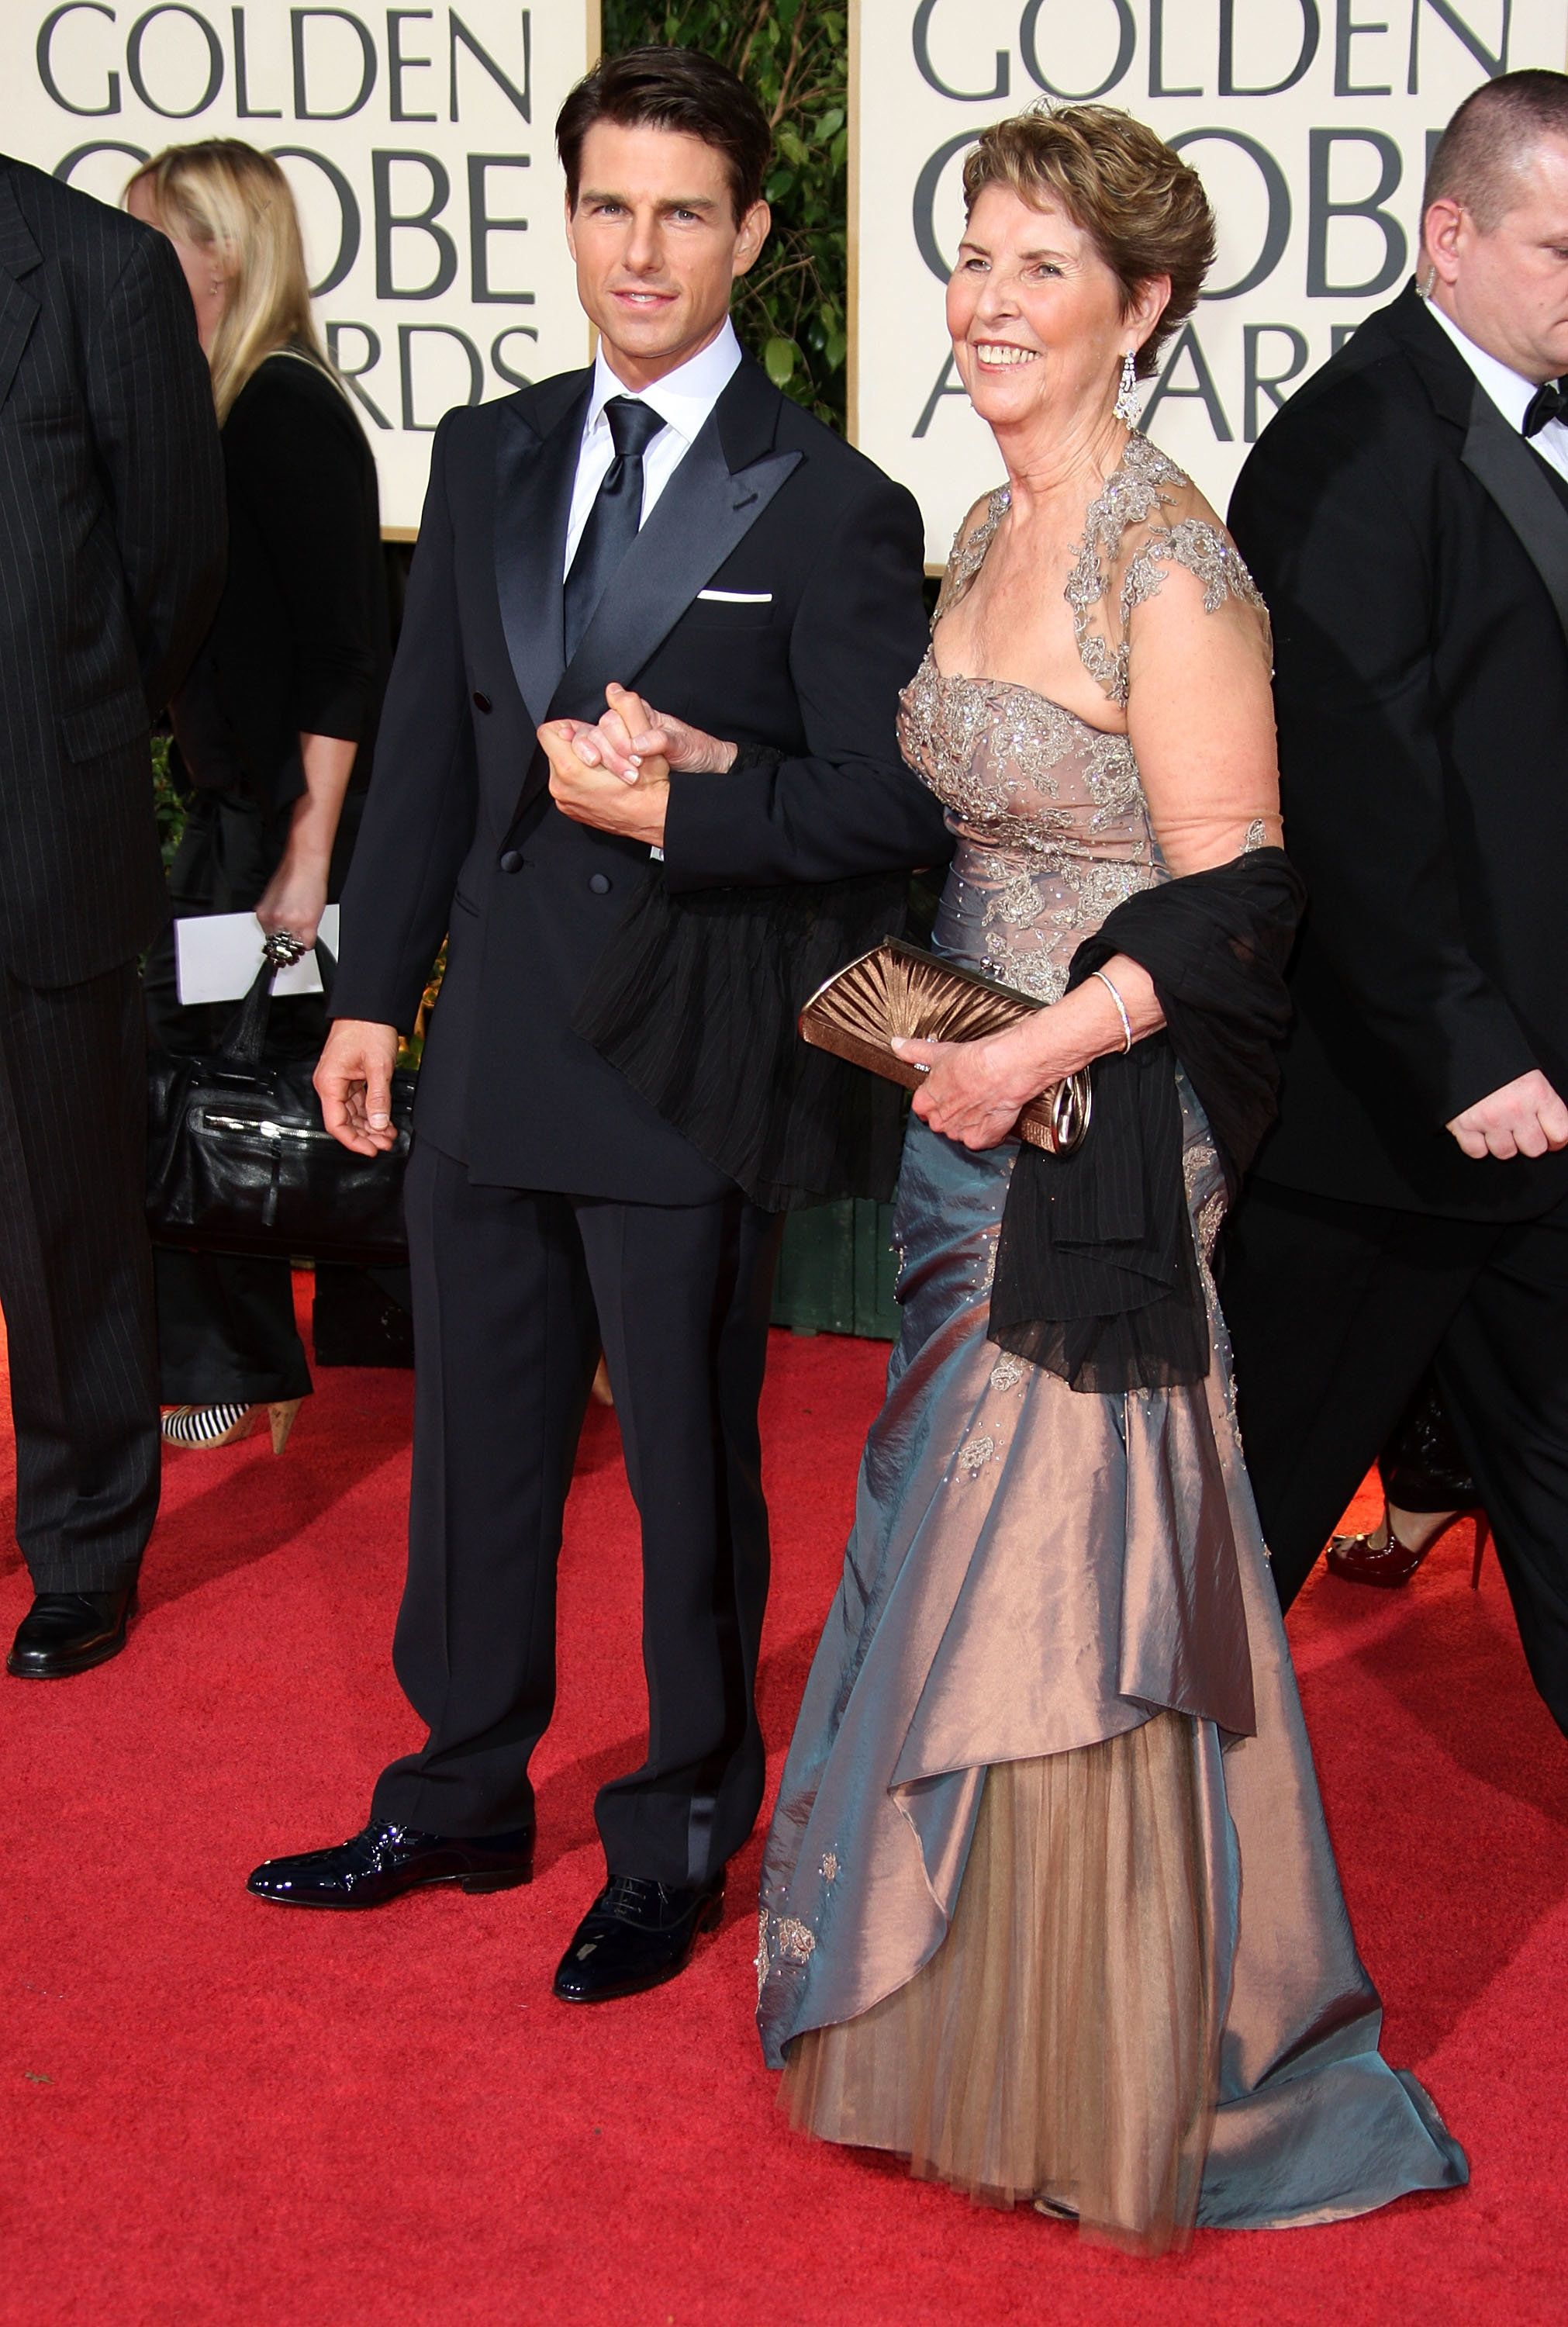 Tom Cruise and his mother attend the66th Annual Golden Globe Awards in 2009.